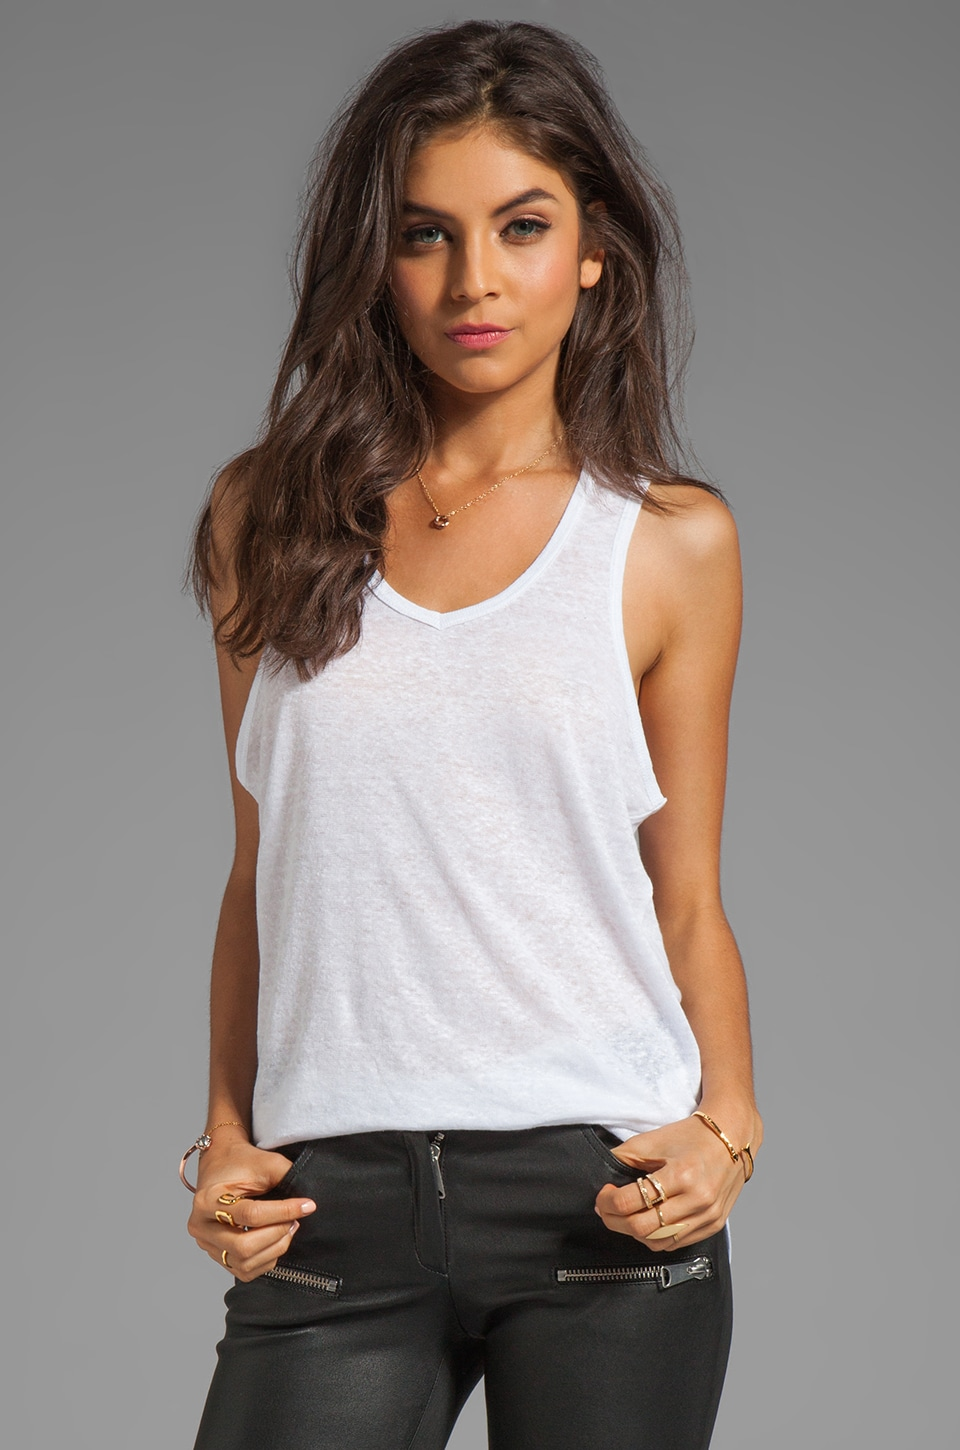 ANINE BING Linen Tank in White